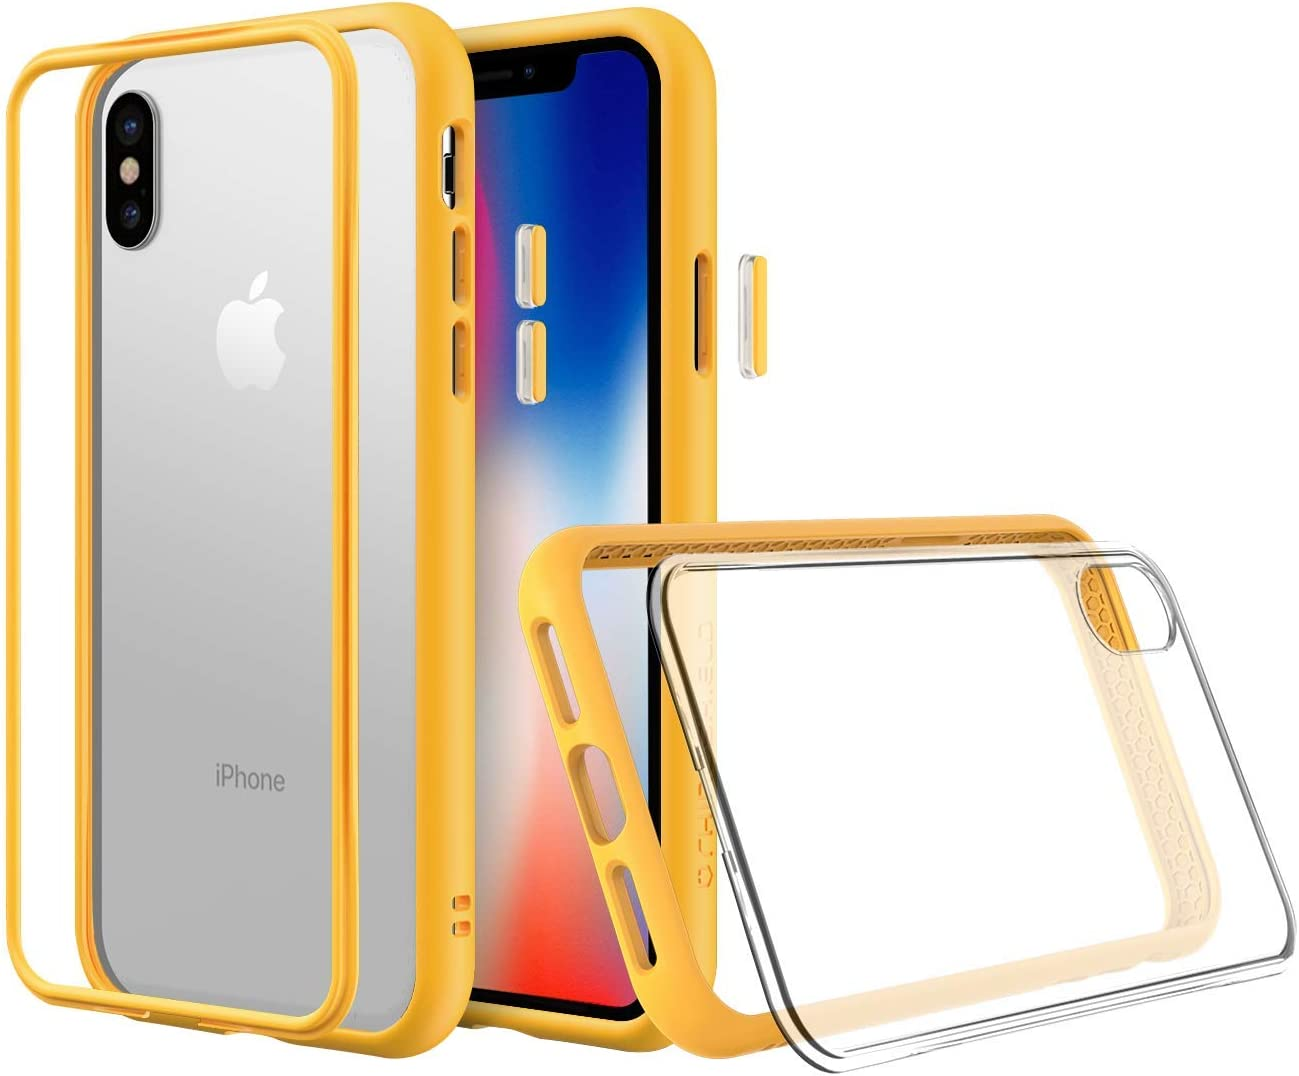 Amazon Com Rhinoshield Modular Case Compatible With Iphone X Mod Nx Customizable Shock Absorbent Heavy Duty Protective Cover Shockproof Yellow Bumper With Clear Back